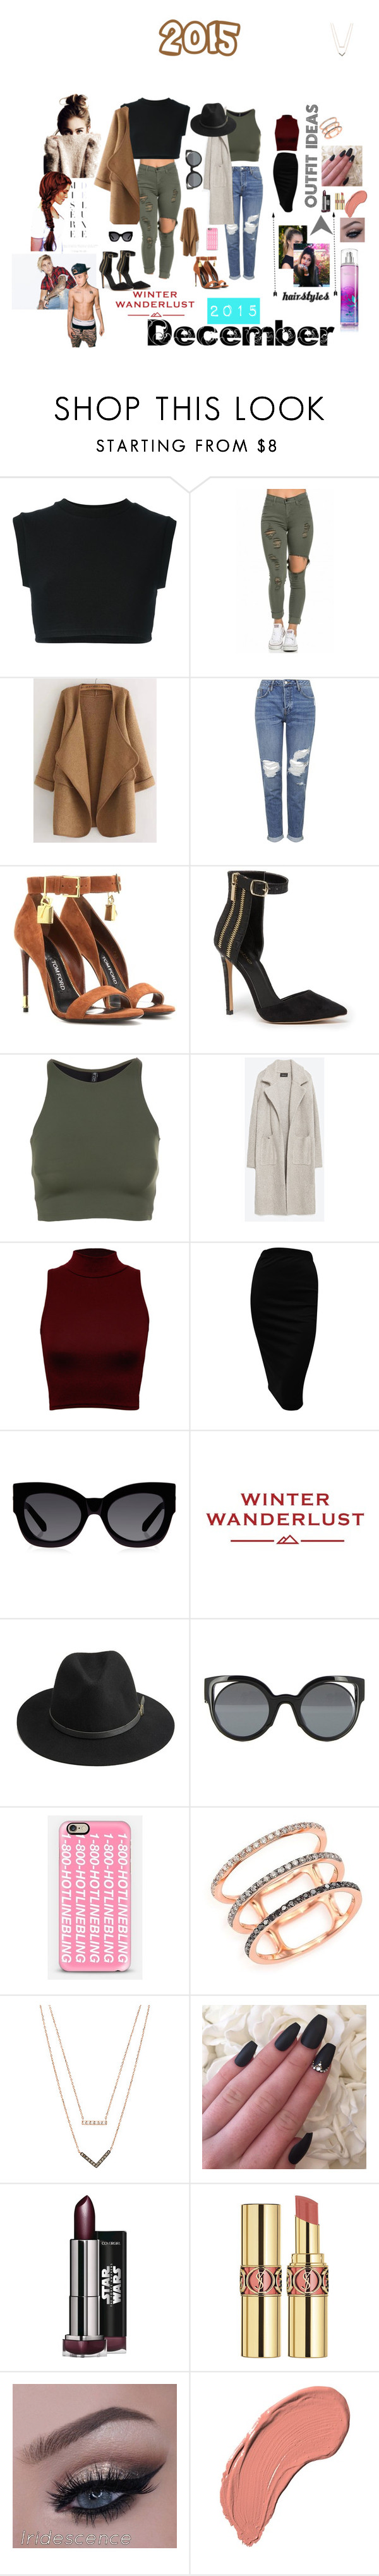 """""""12-27-15     BIrthday"""" by dreamstyle21 on Polyvore featuring Justin Bieber, adidas Originals, WithChic, Topshop, Tom Ford, Bebe, Onzie, Zara, WearAll and Karen Walker"""